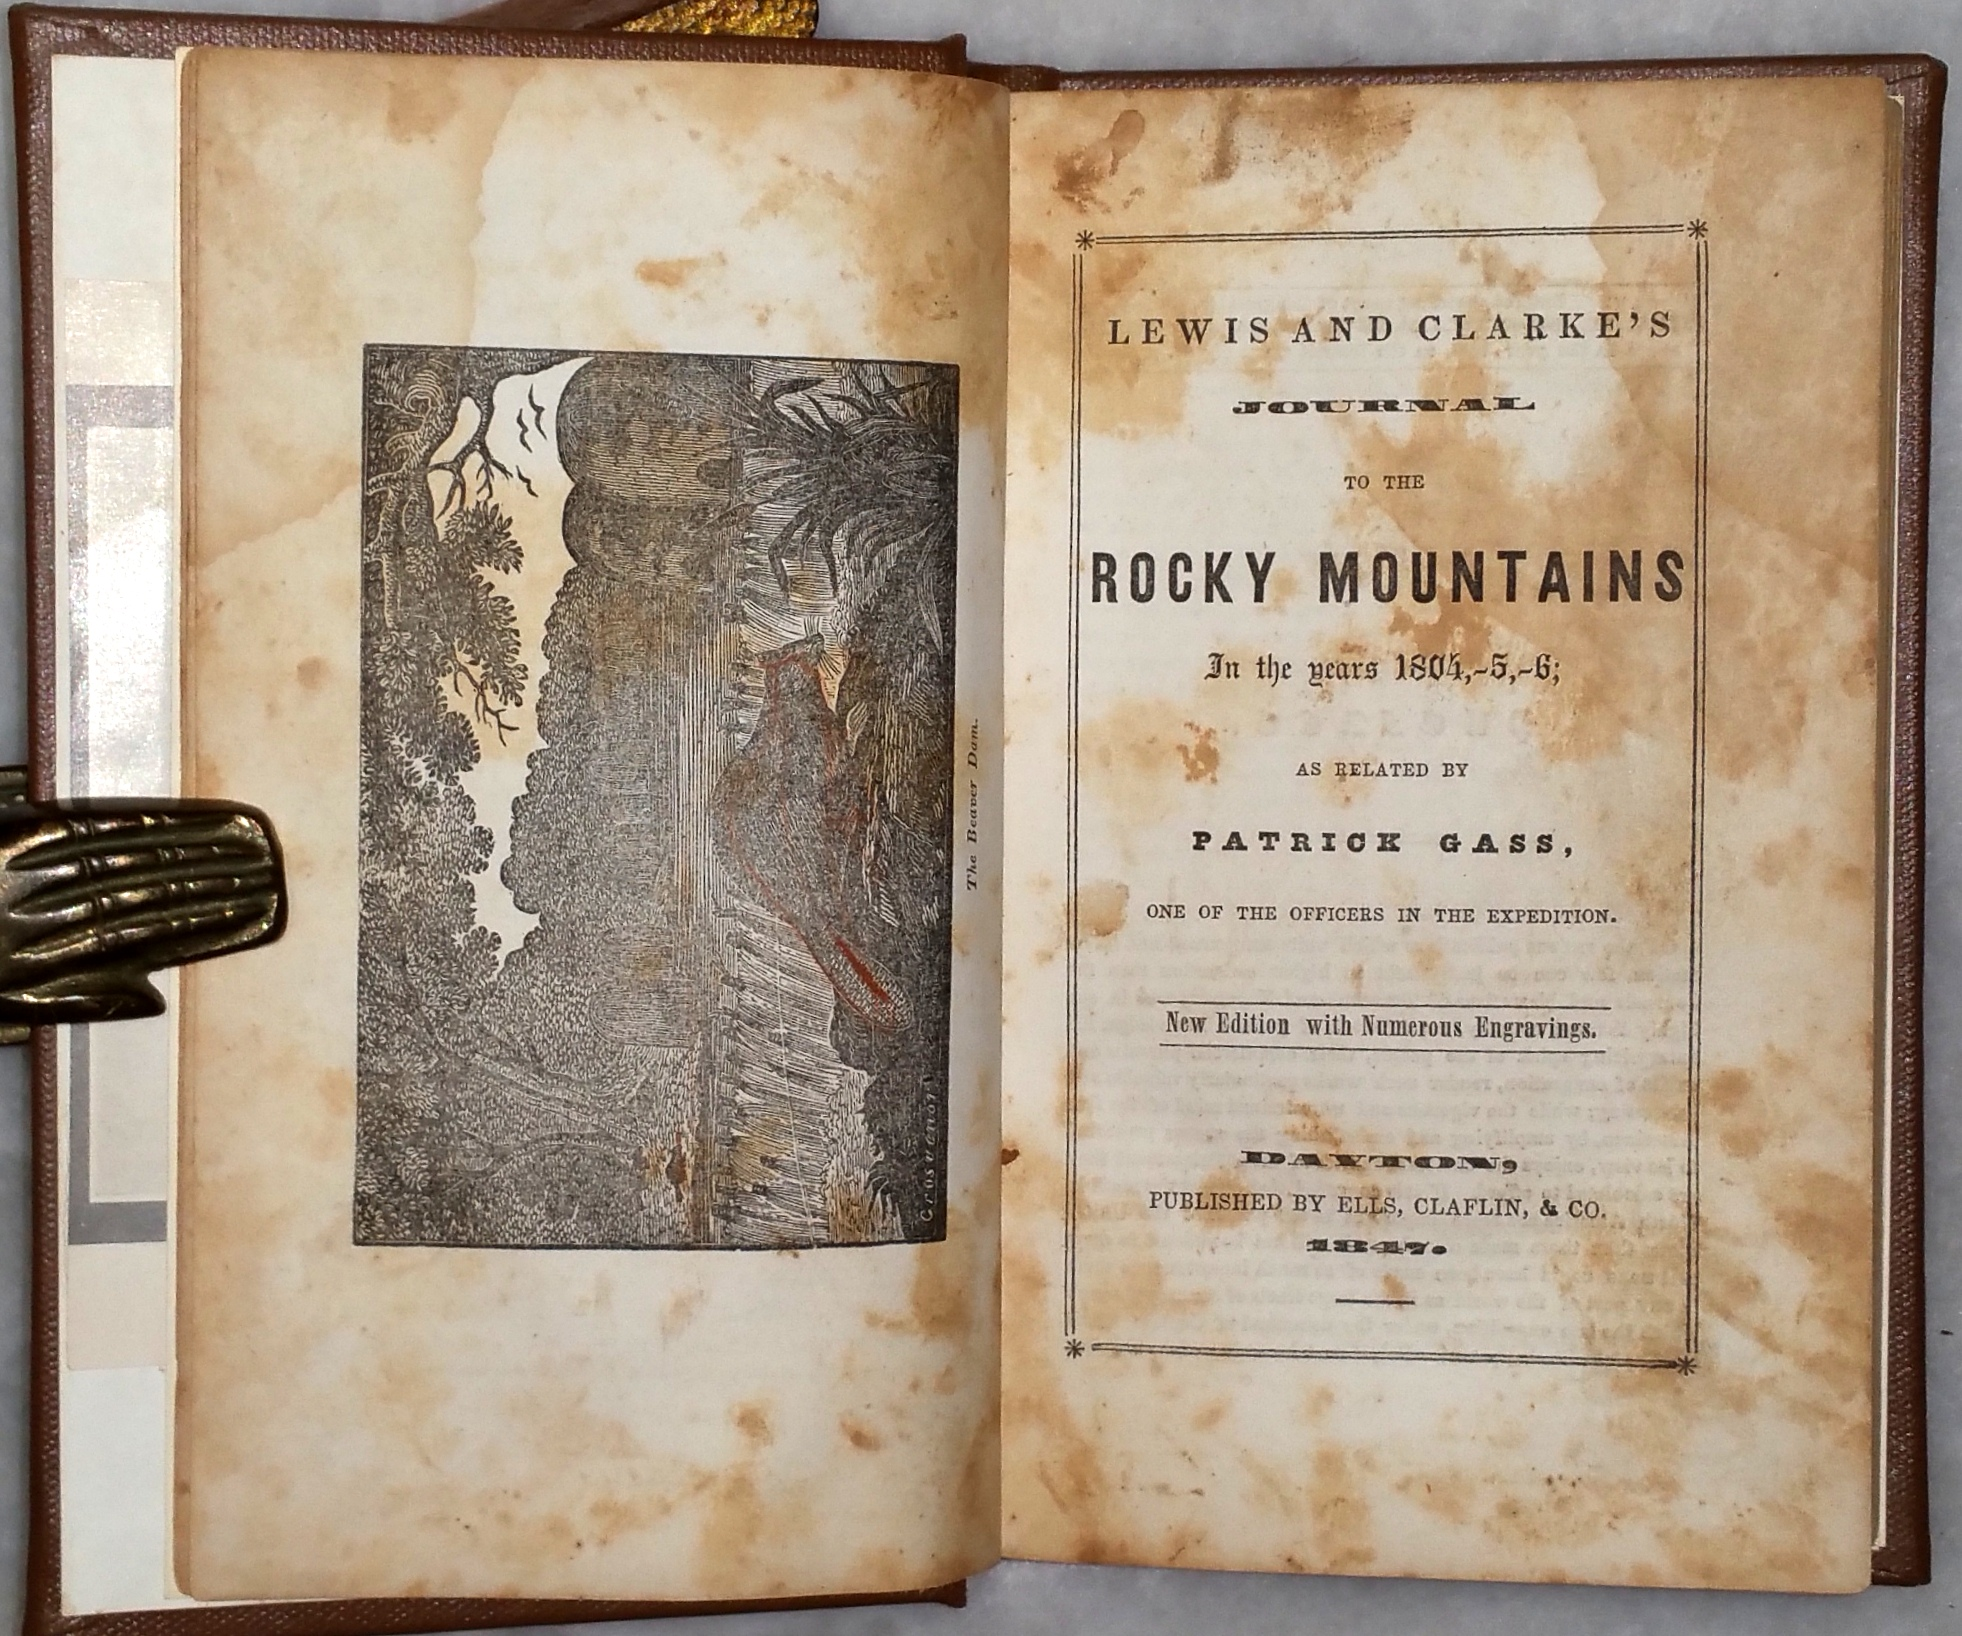 Image for Lewis and Clarke's Journal to the Rocky Mountains in the Years 1804,-5,-6